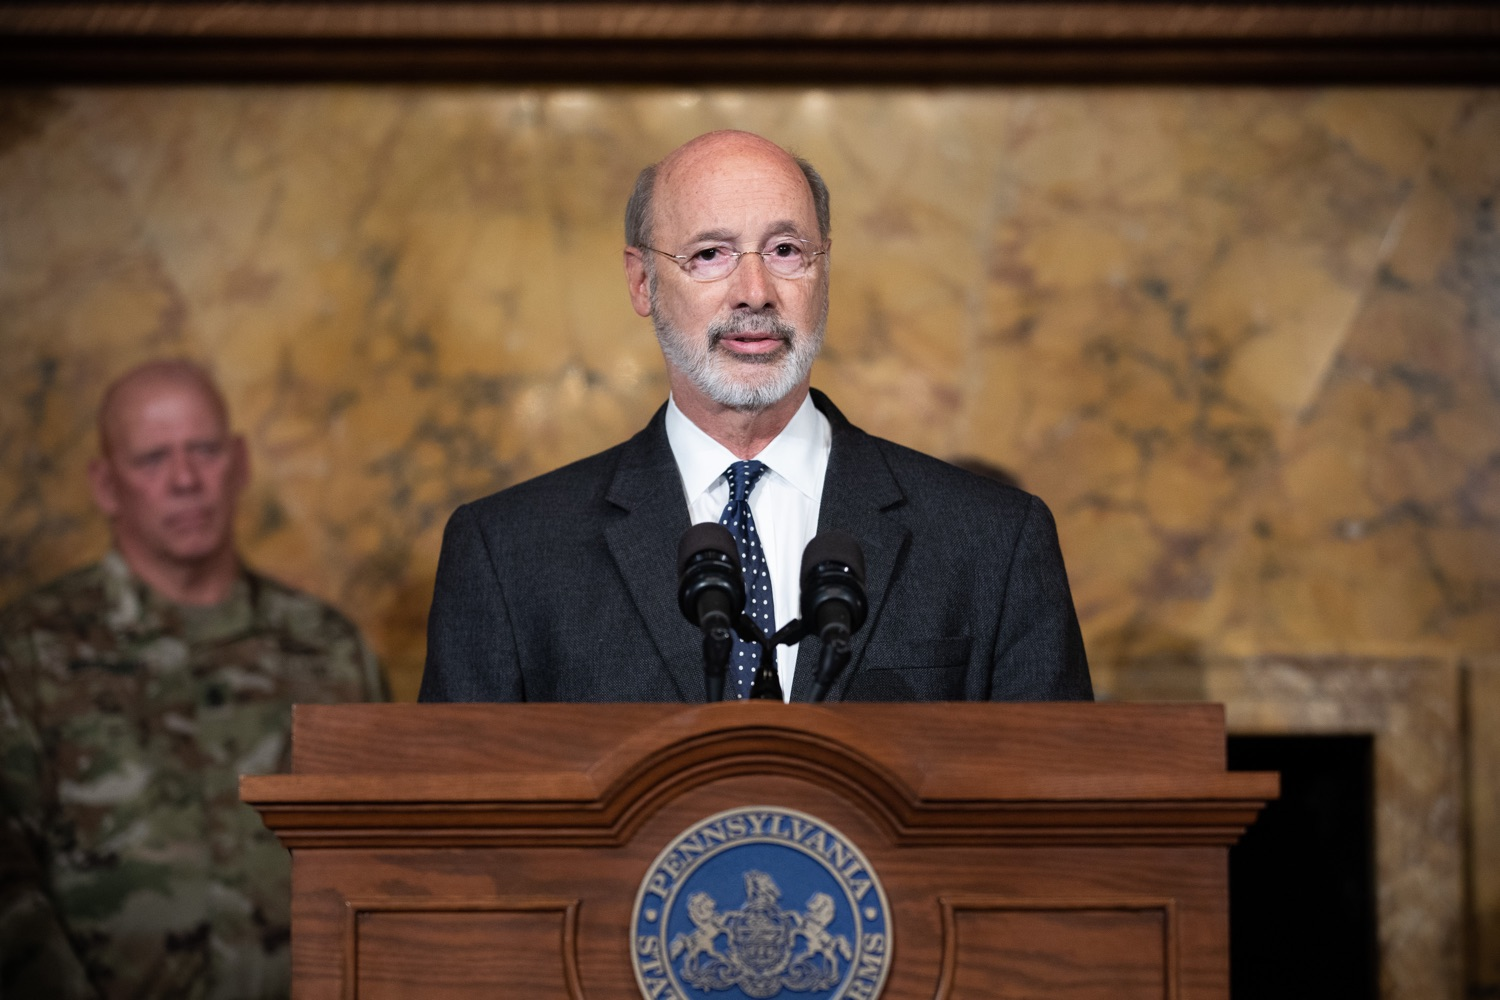 "<a href=""http://filesource.abacast.com/commonwealthofpa/photo/17423_gov_trip_recap_dz_003.jpg"" target=""_blank"">⇣ Download Photo<br></a>Harrisburg, PA  Governor Tom Wolf speaking about his recent visit to Lithuania and Poland.  Governor Tom Wolf today highlighted the second half of his trip abroad, including visiting with more than 500 PA National Guard (PNG) troops in Poland, and honoring the Tree of Life synagogue victims at the Auschwitz-Birkenau Memorial. Tuesday, September 17, 2019"